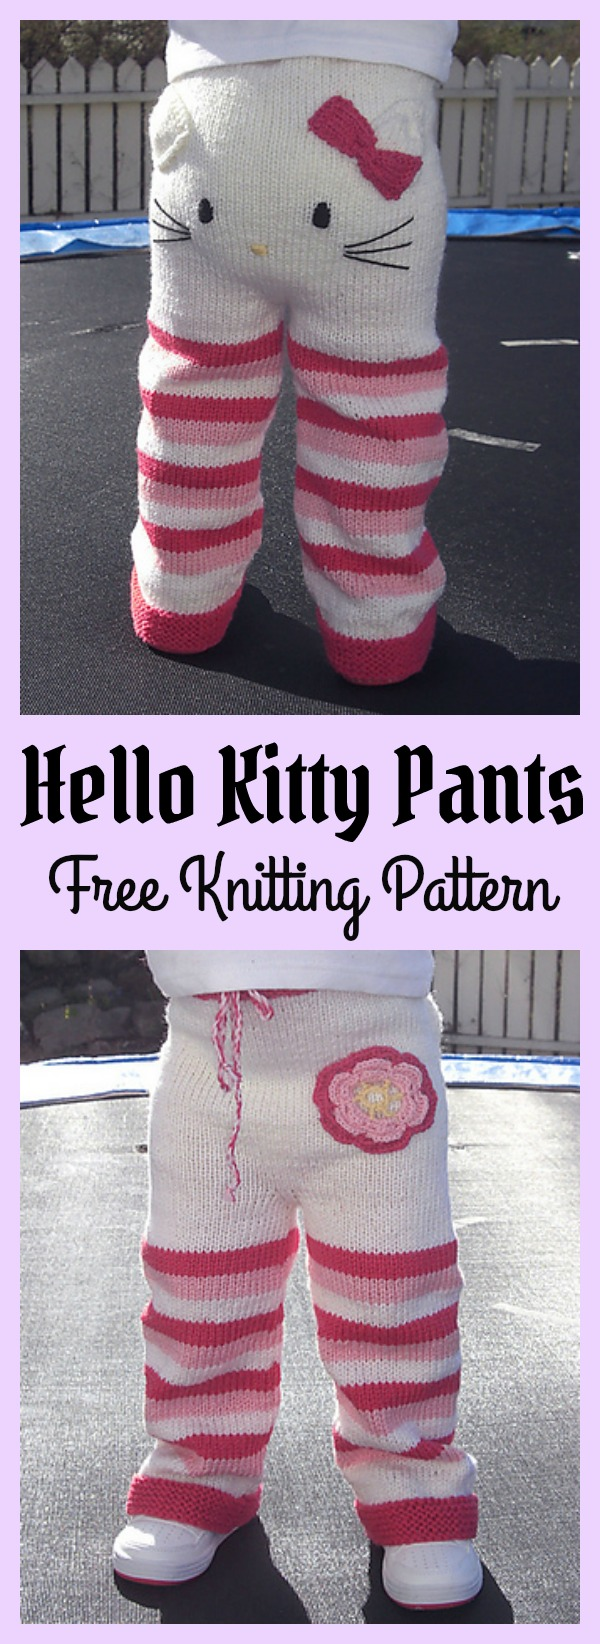 Hello Kitty Pants Free Knitting Pattern m